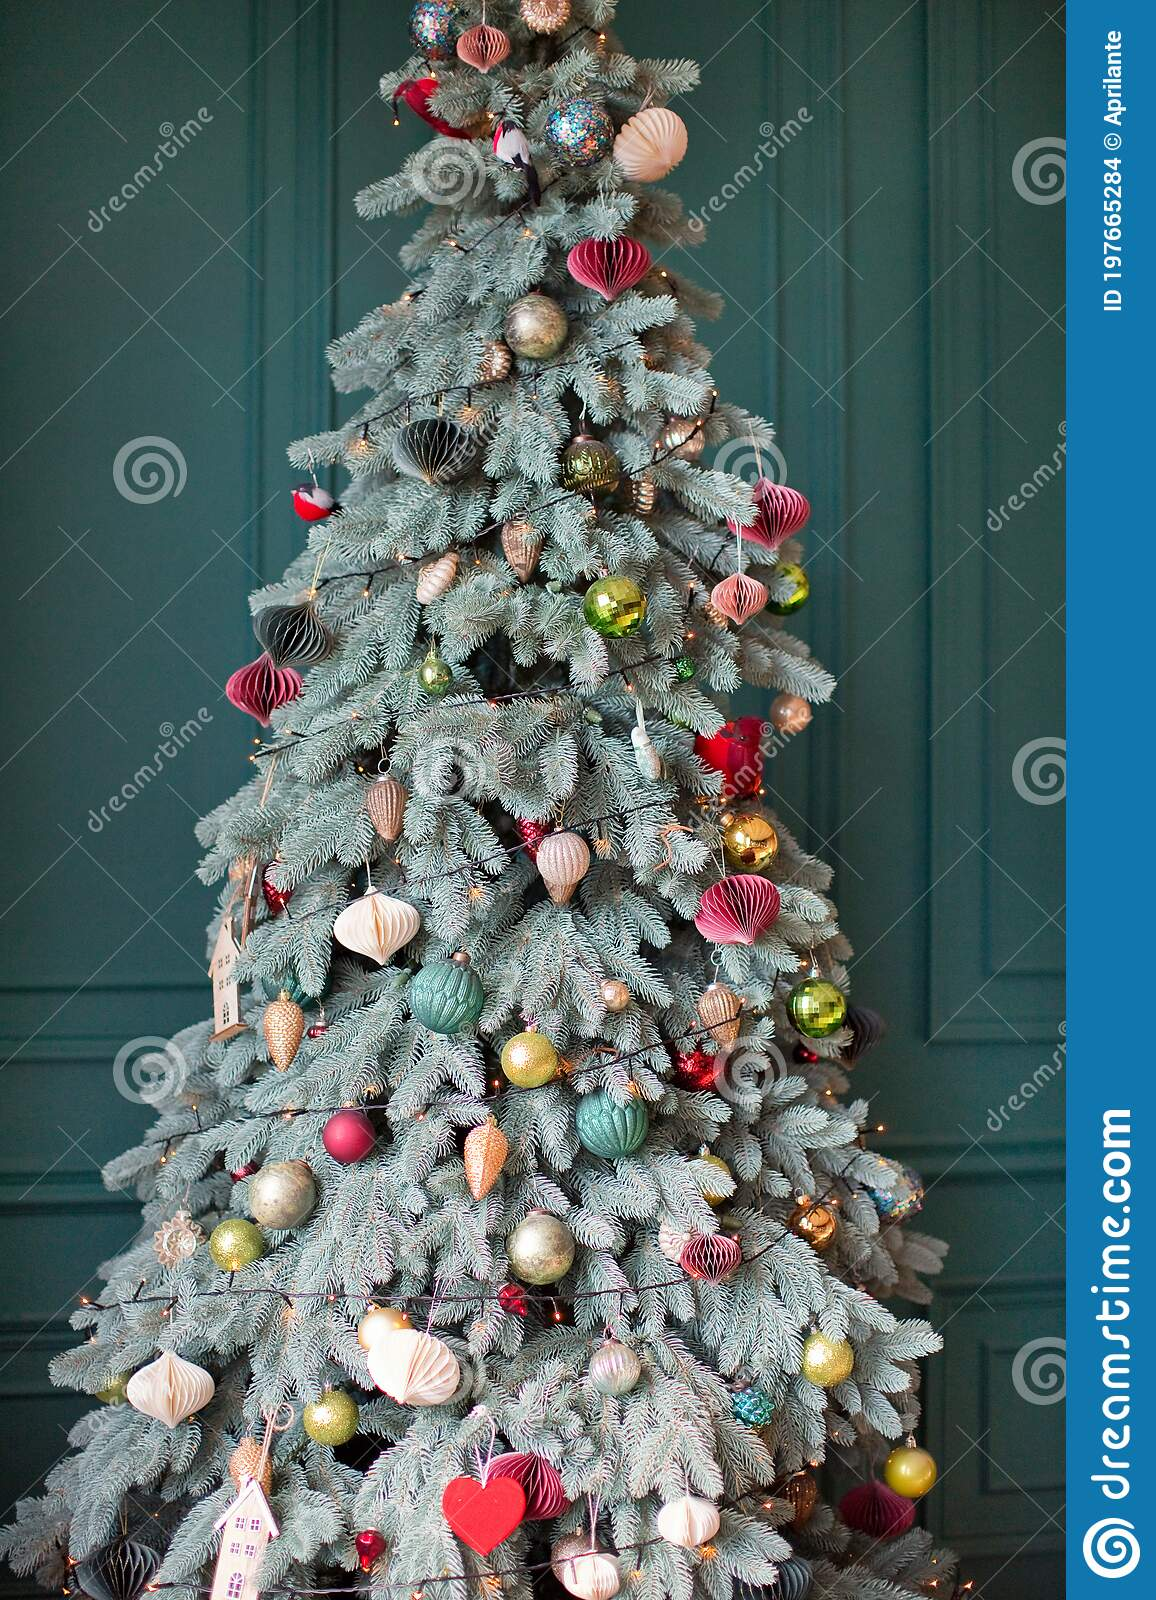 Christmas Tree With Pink Gold Decorations Stock Photo Image Of Merry Modern 197665284